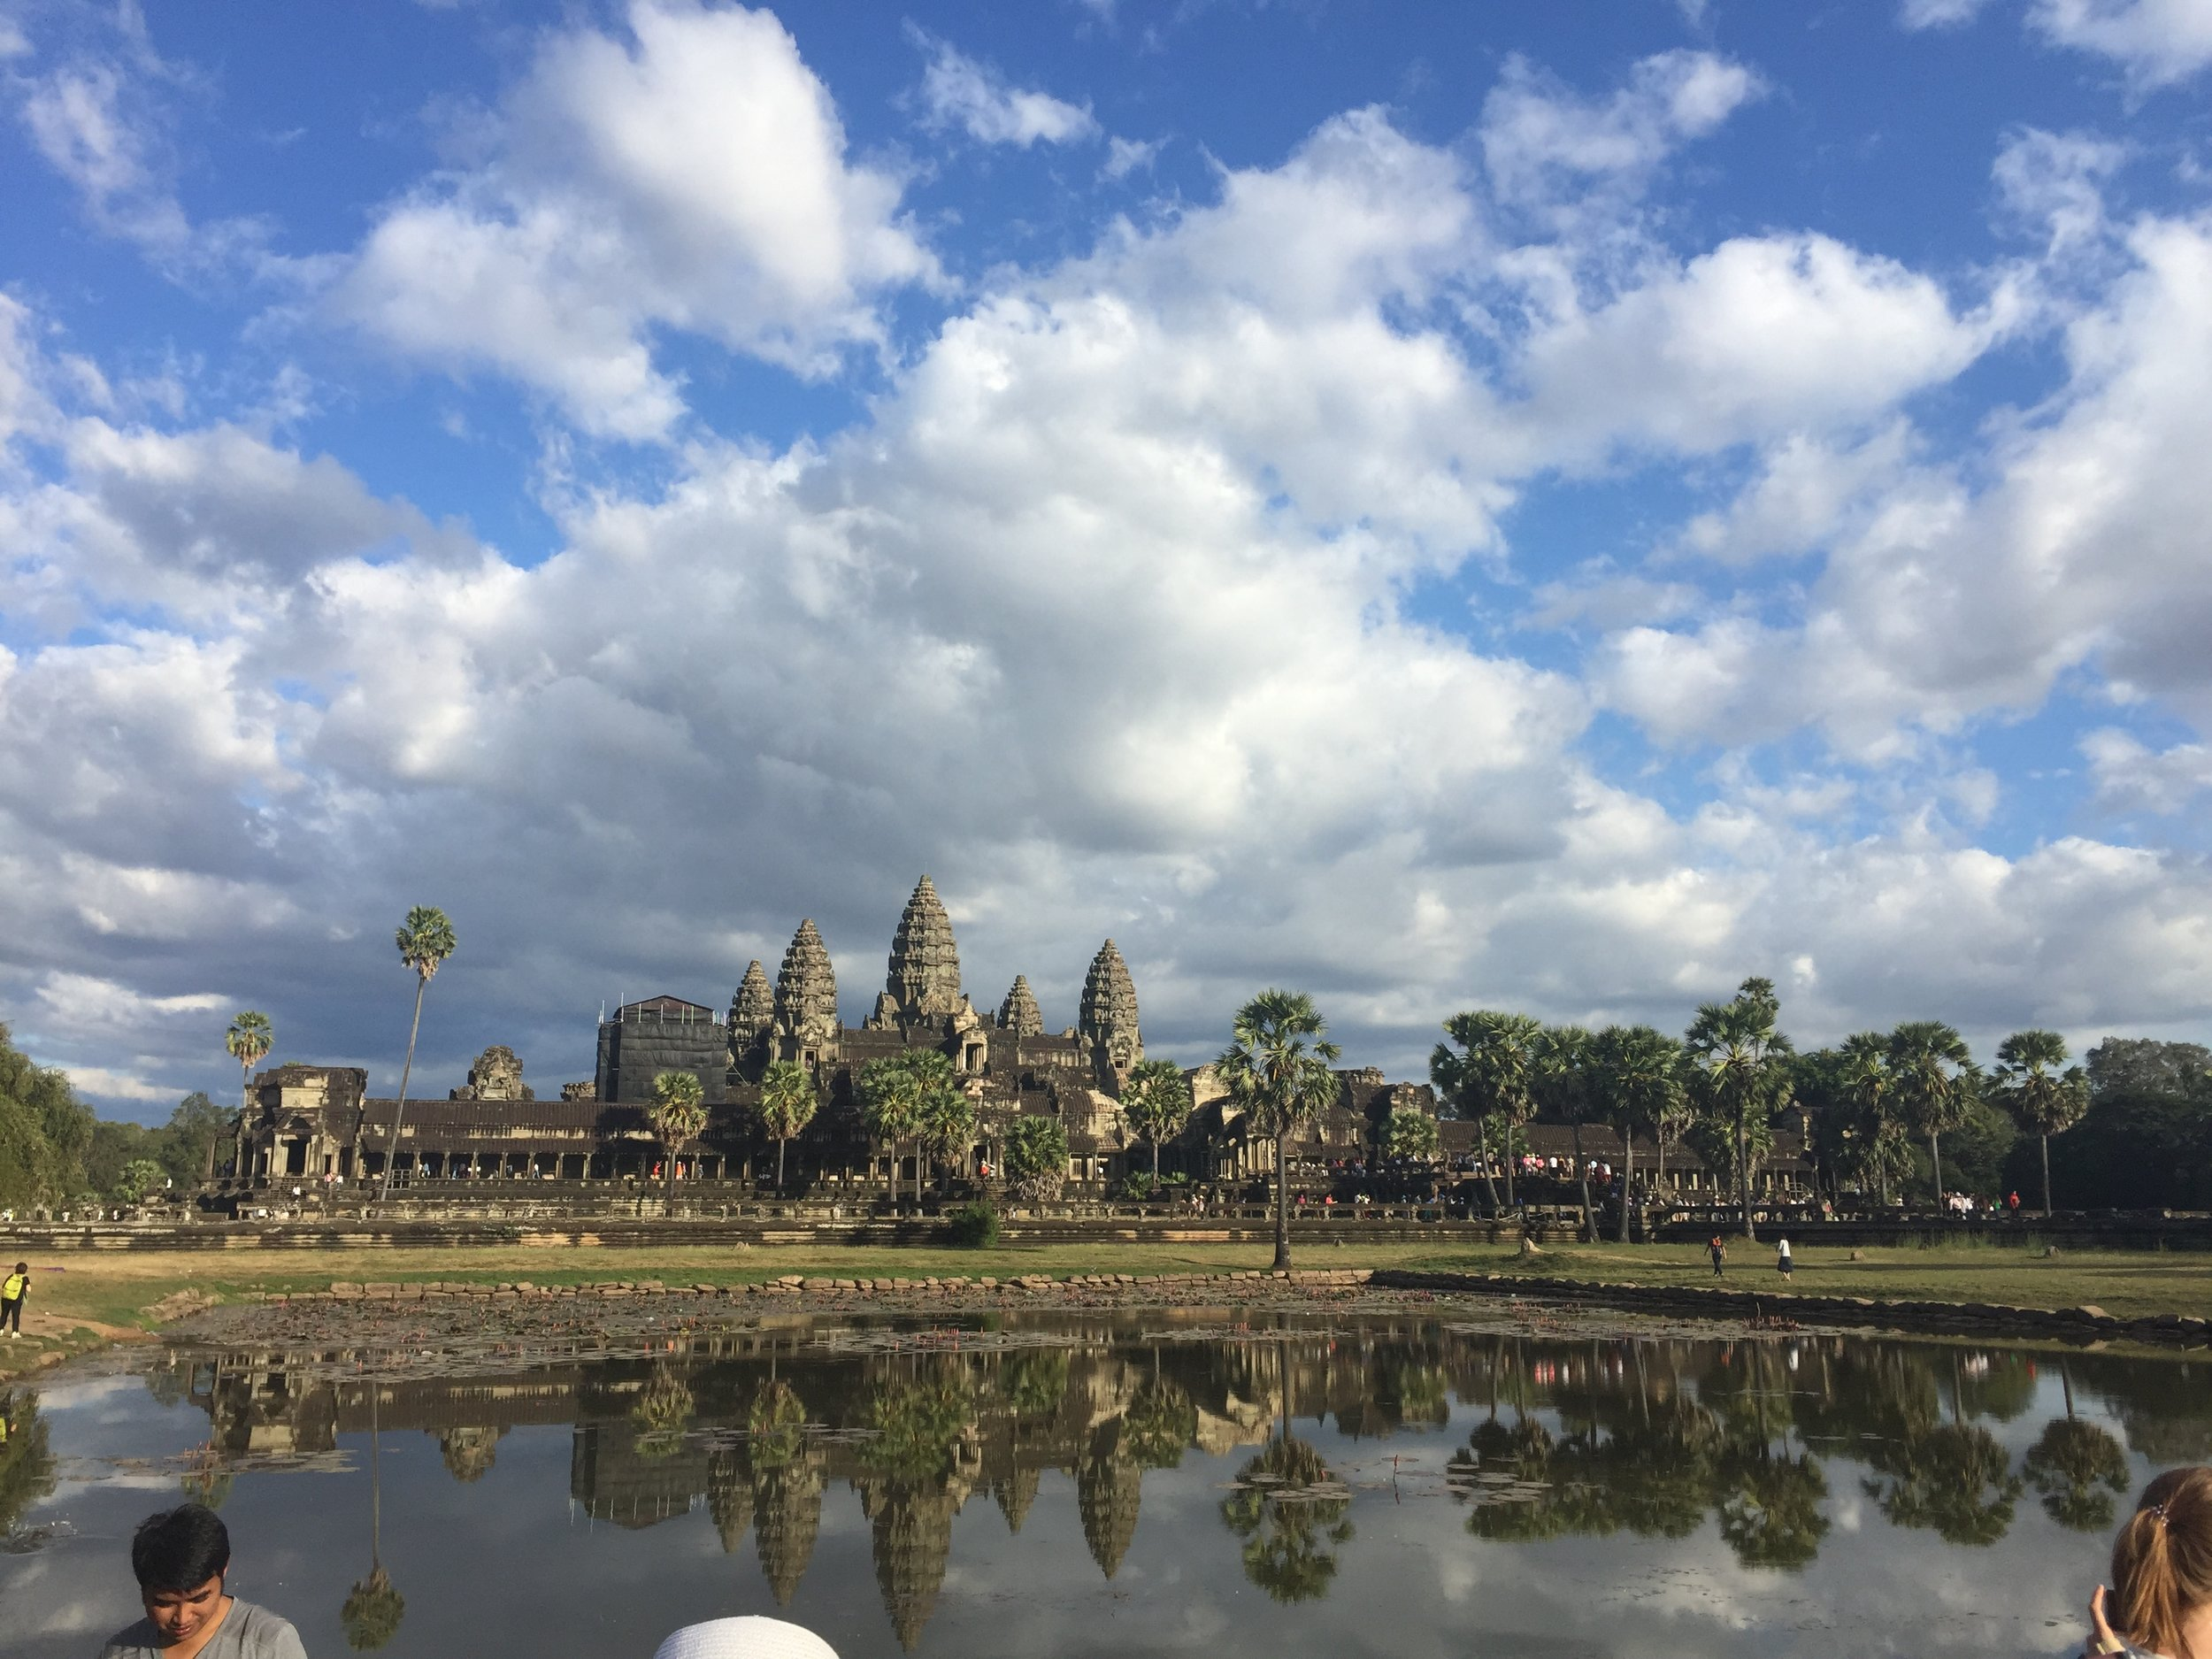 We made plans on NYE to catch the first sunrise of the year over Angkor Wat...